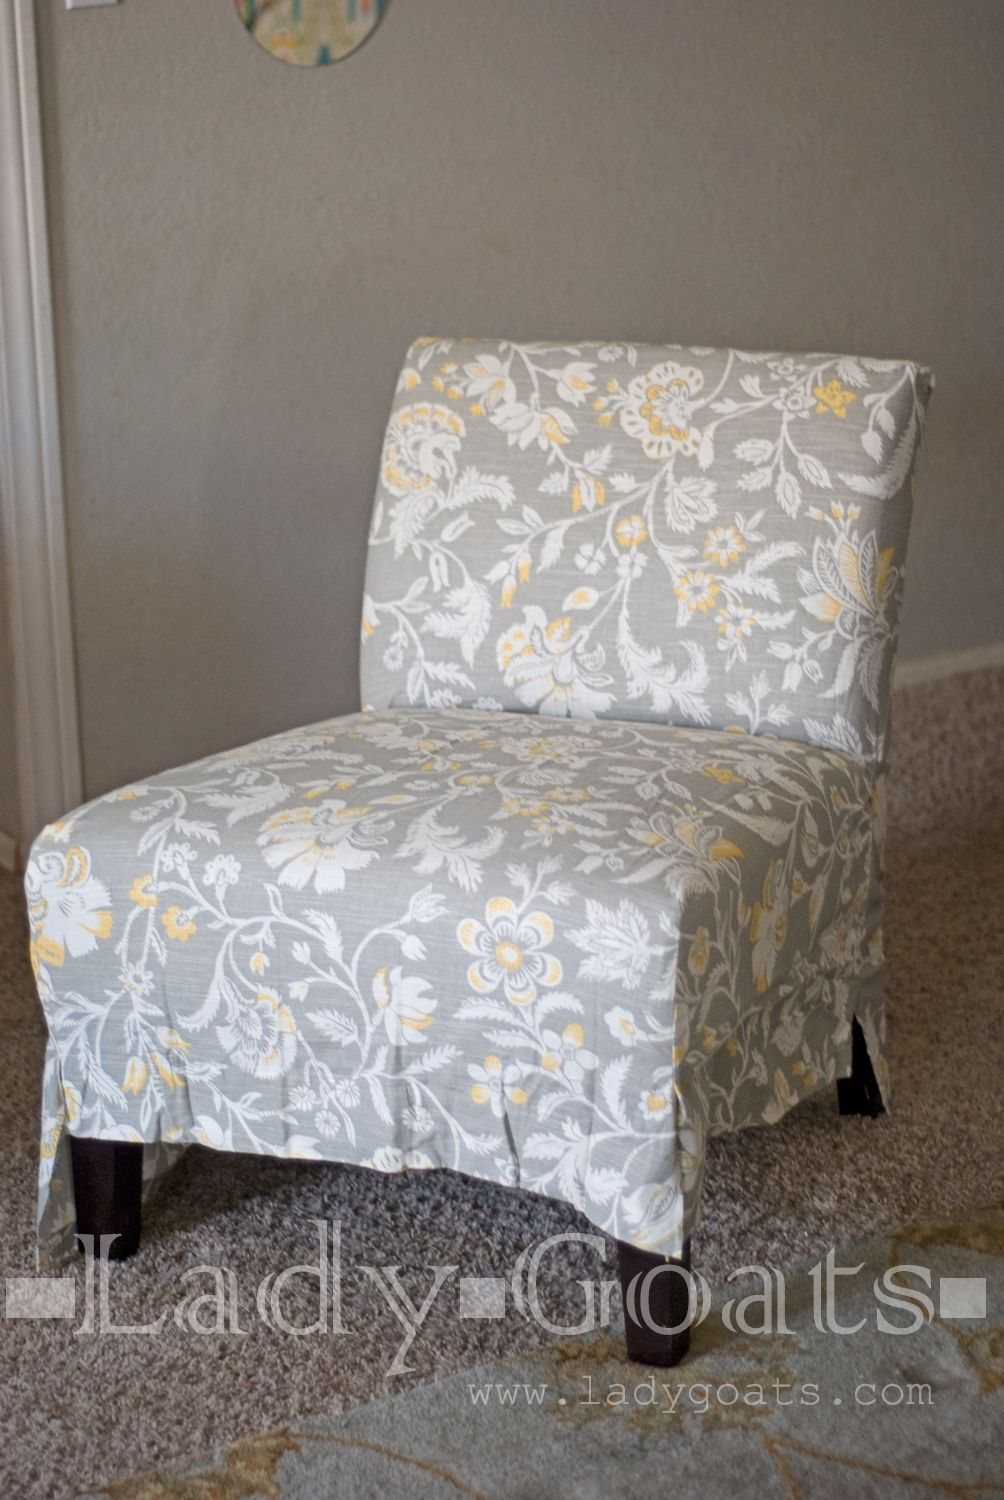 lady goats diy slipper chair slipcover without a template